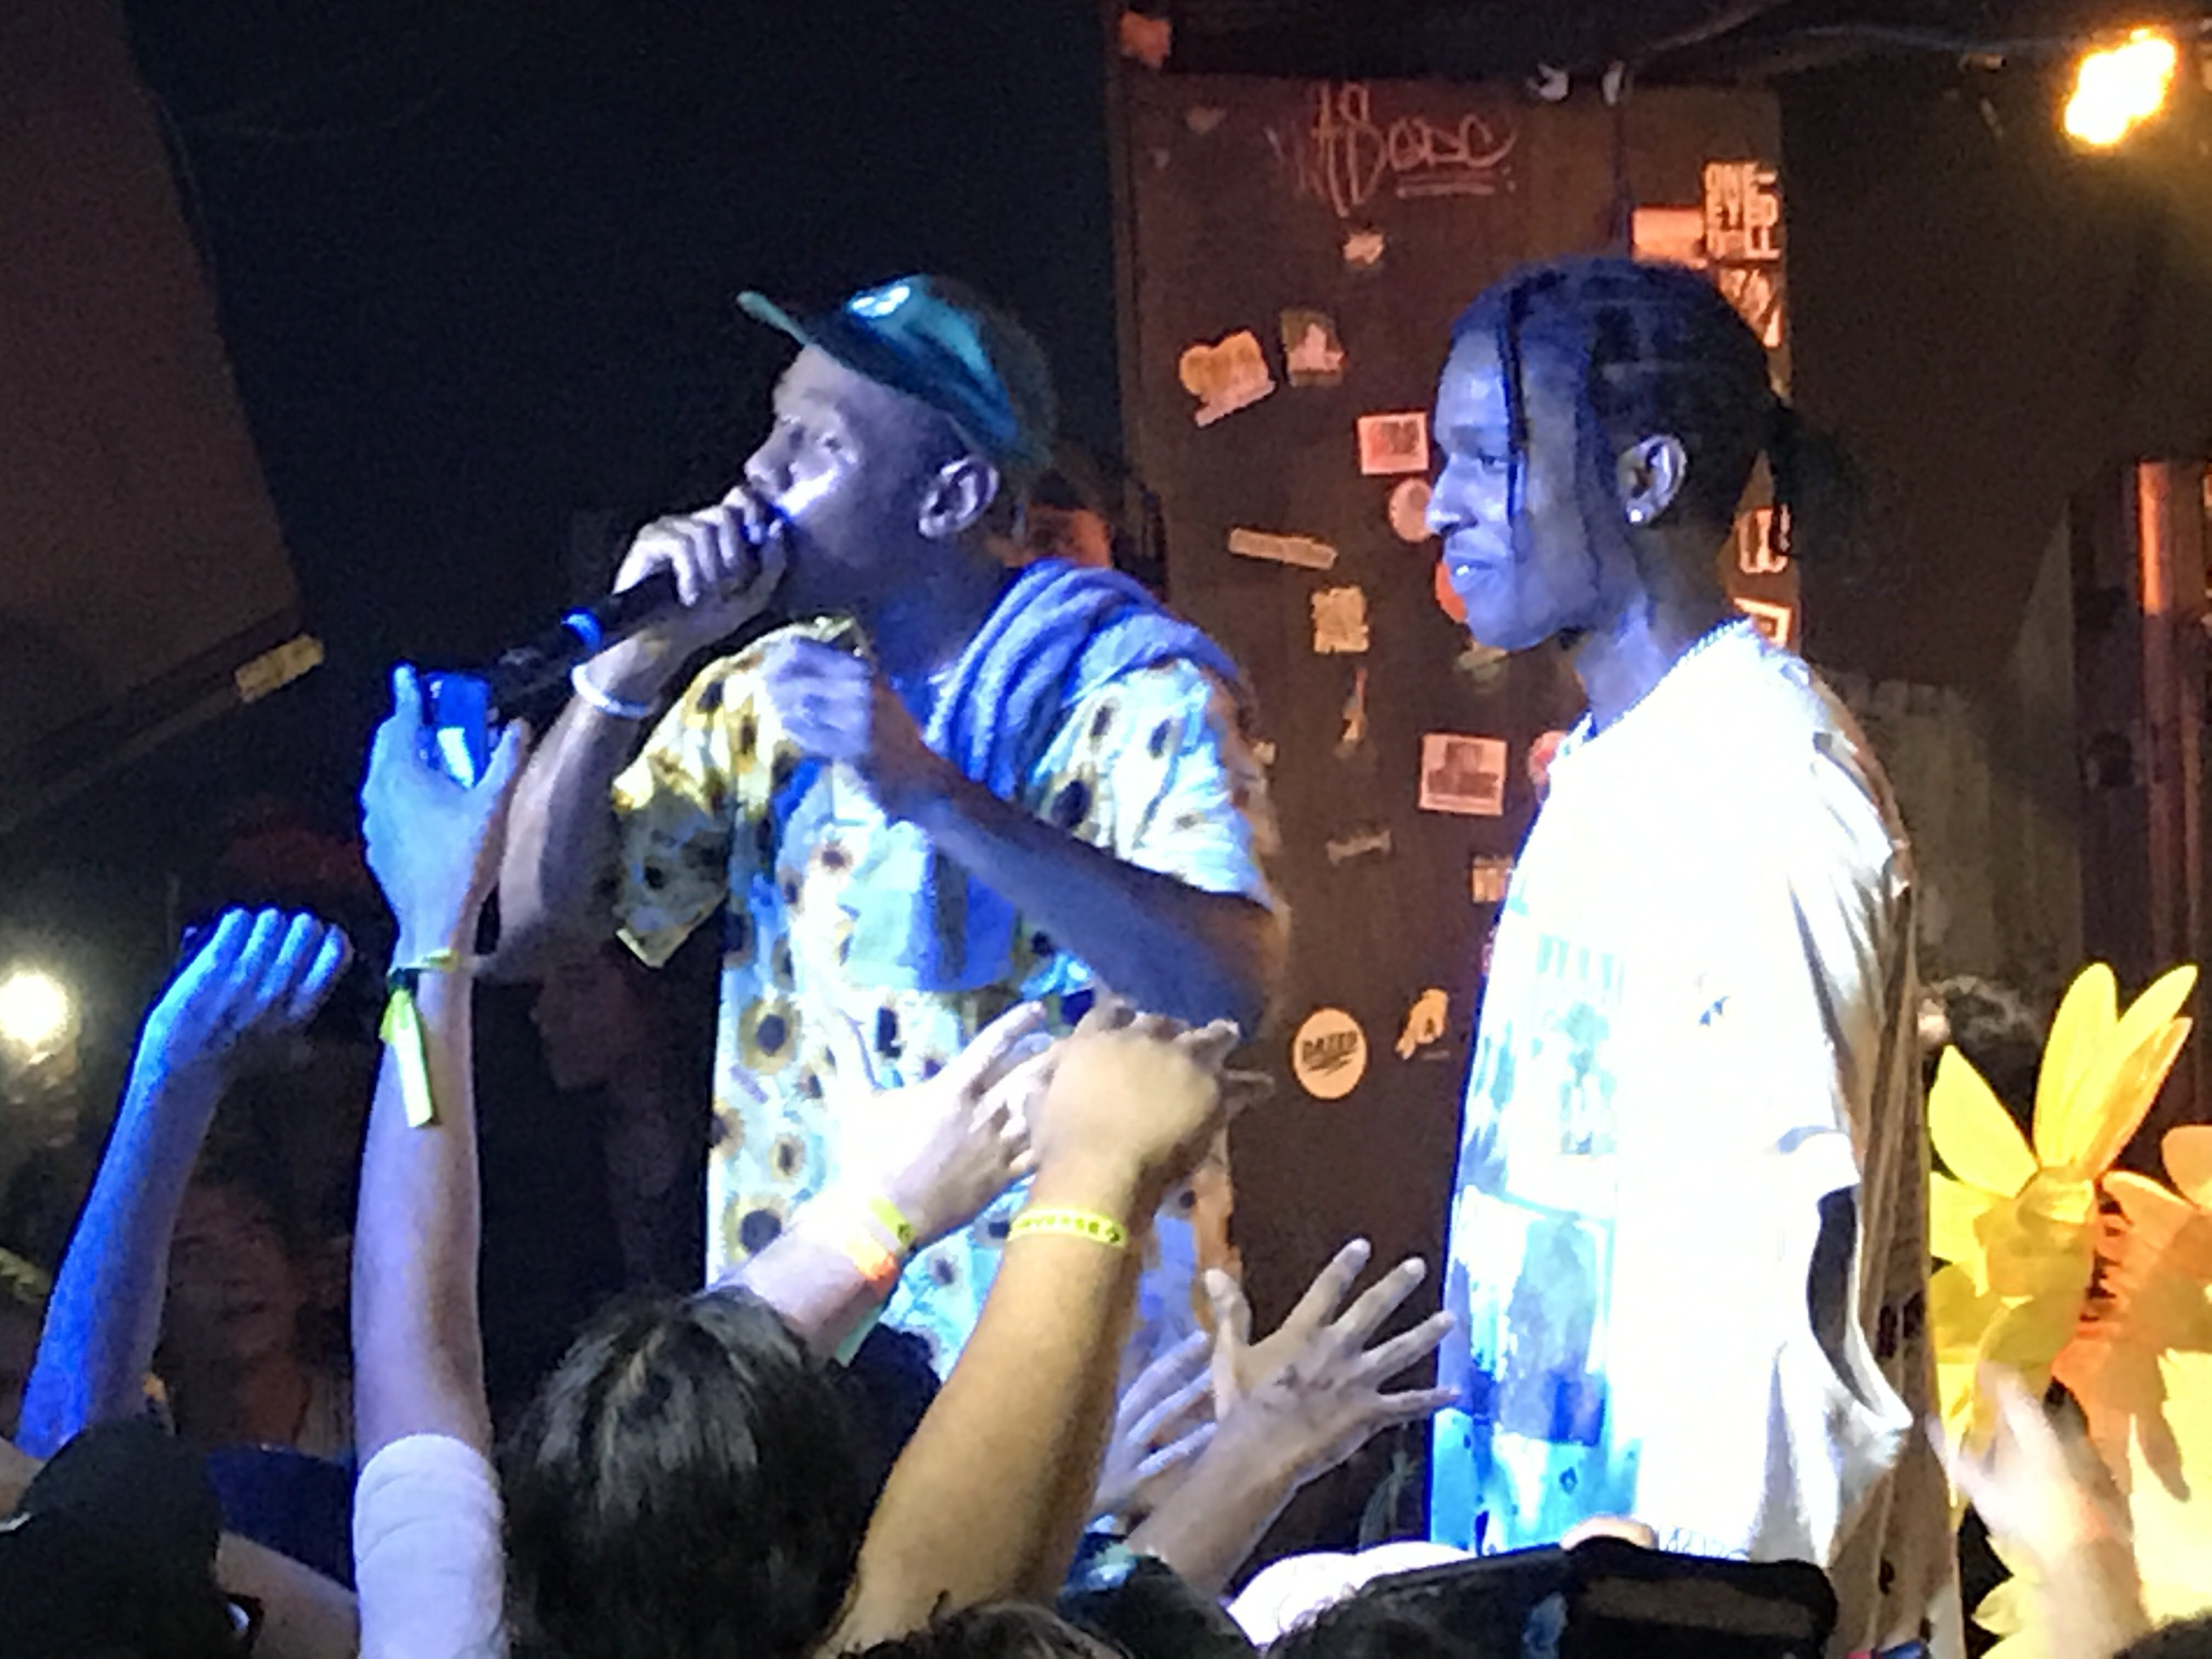 Tyler, the Creator Brings Out Frank Ocean & A$AP Rocky in NYC